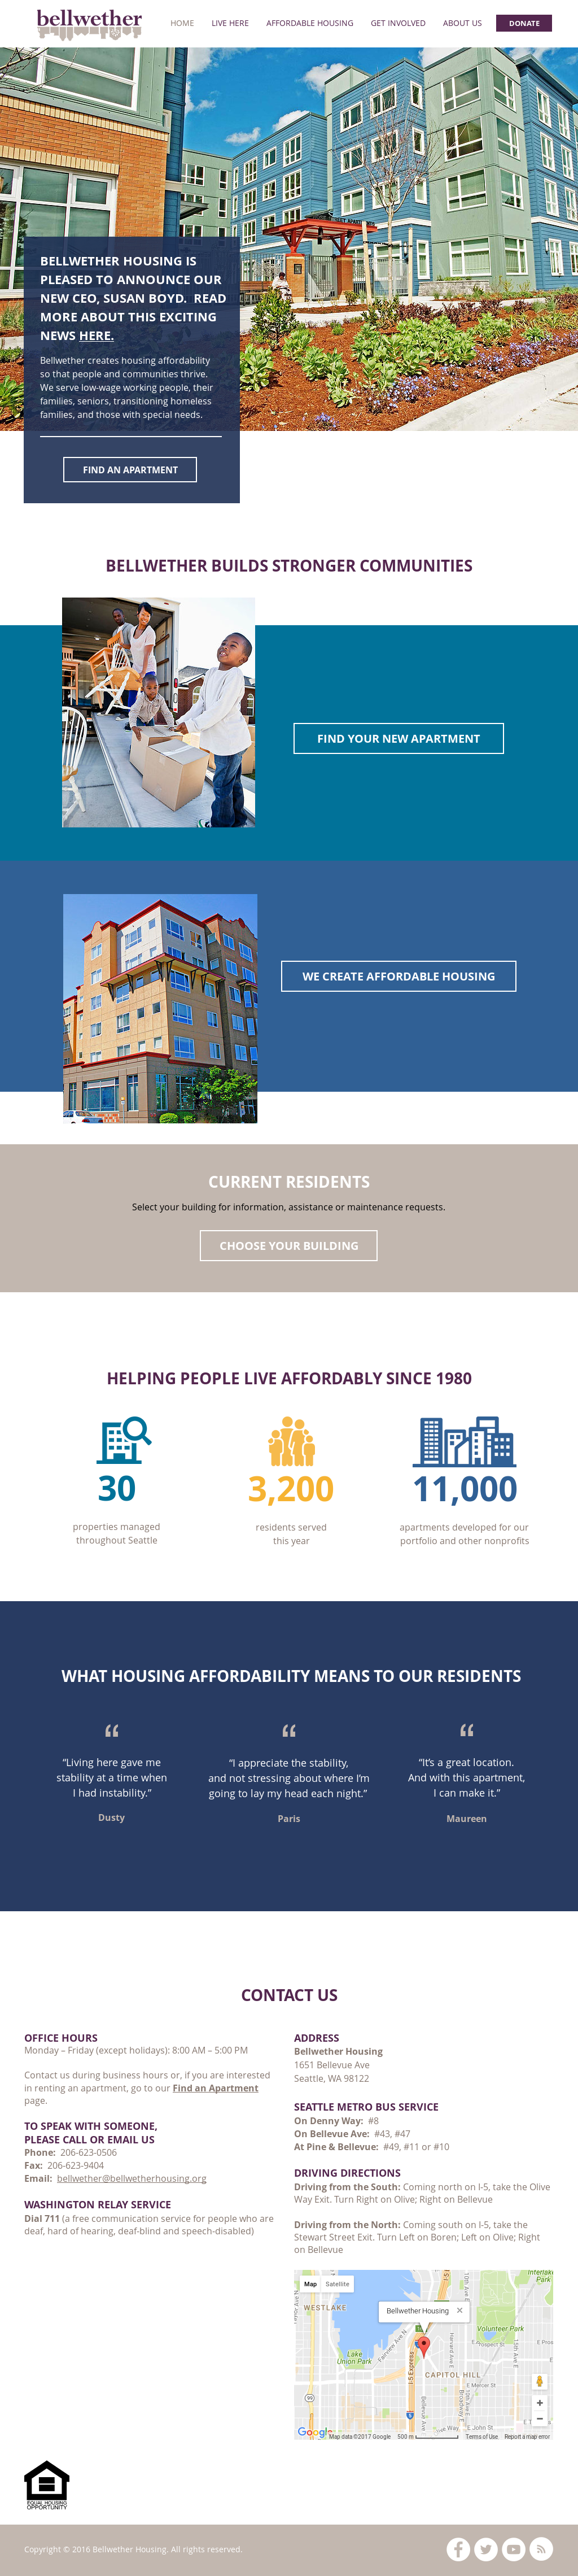 Bellwether Housing Website History